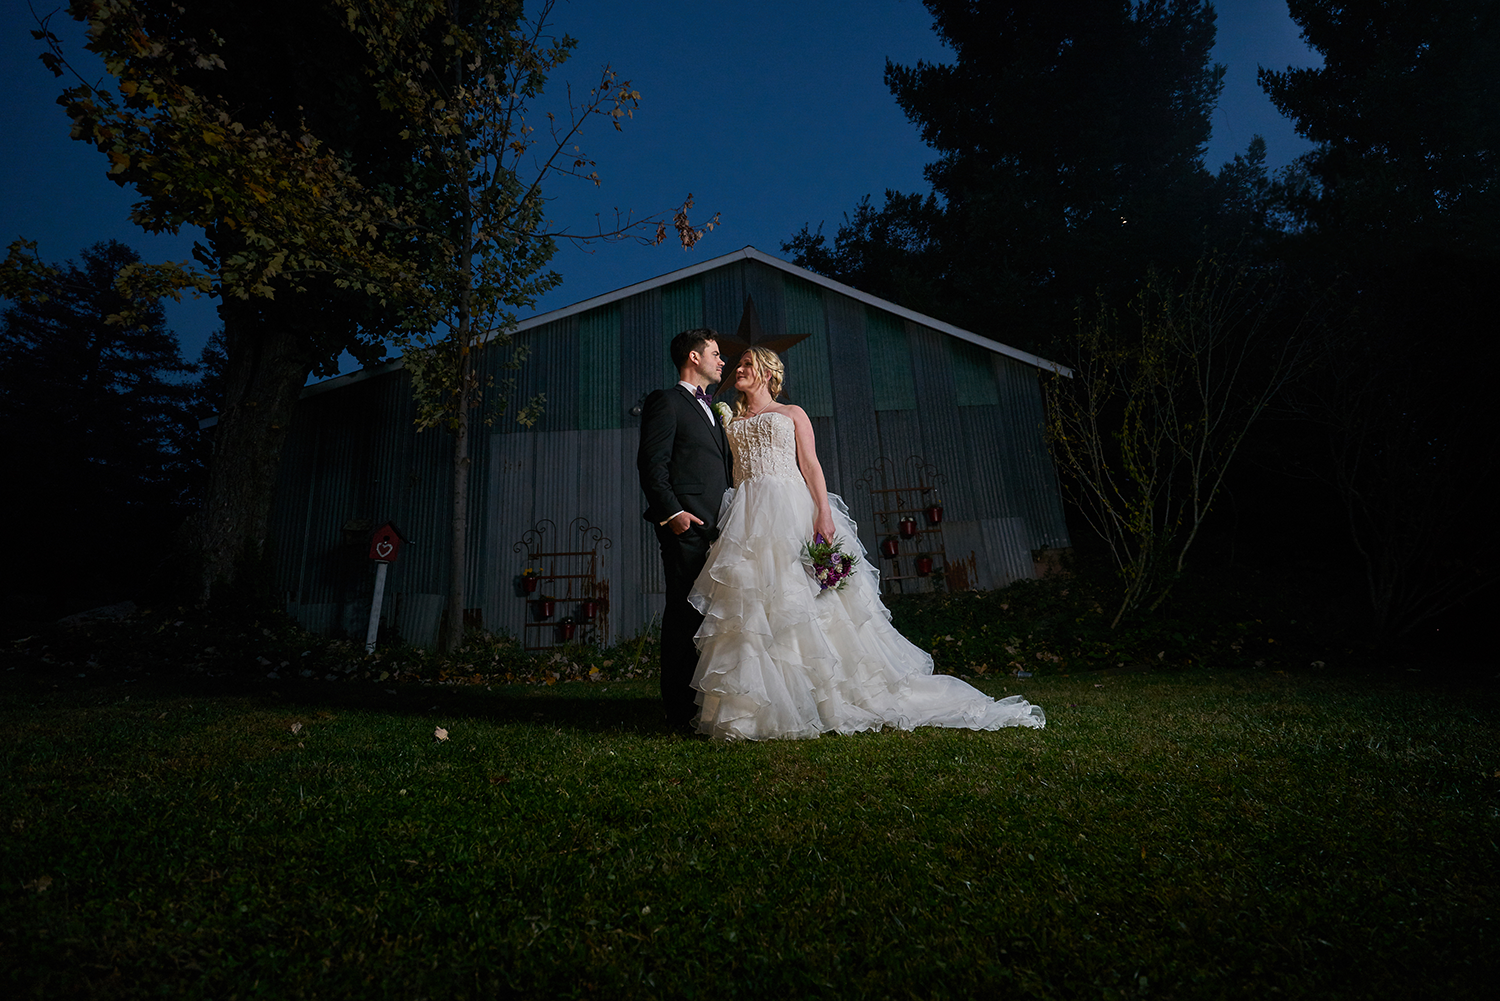 Luxchromatic_Wedding_Photographer__Bride_Best_Bay_Area_San_Francisco_San_Jose_Sony_Alpha_Profoto_0997.png